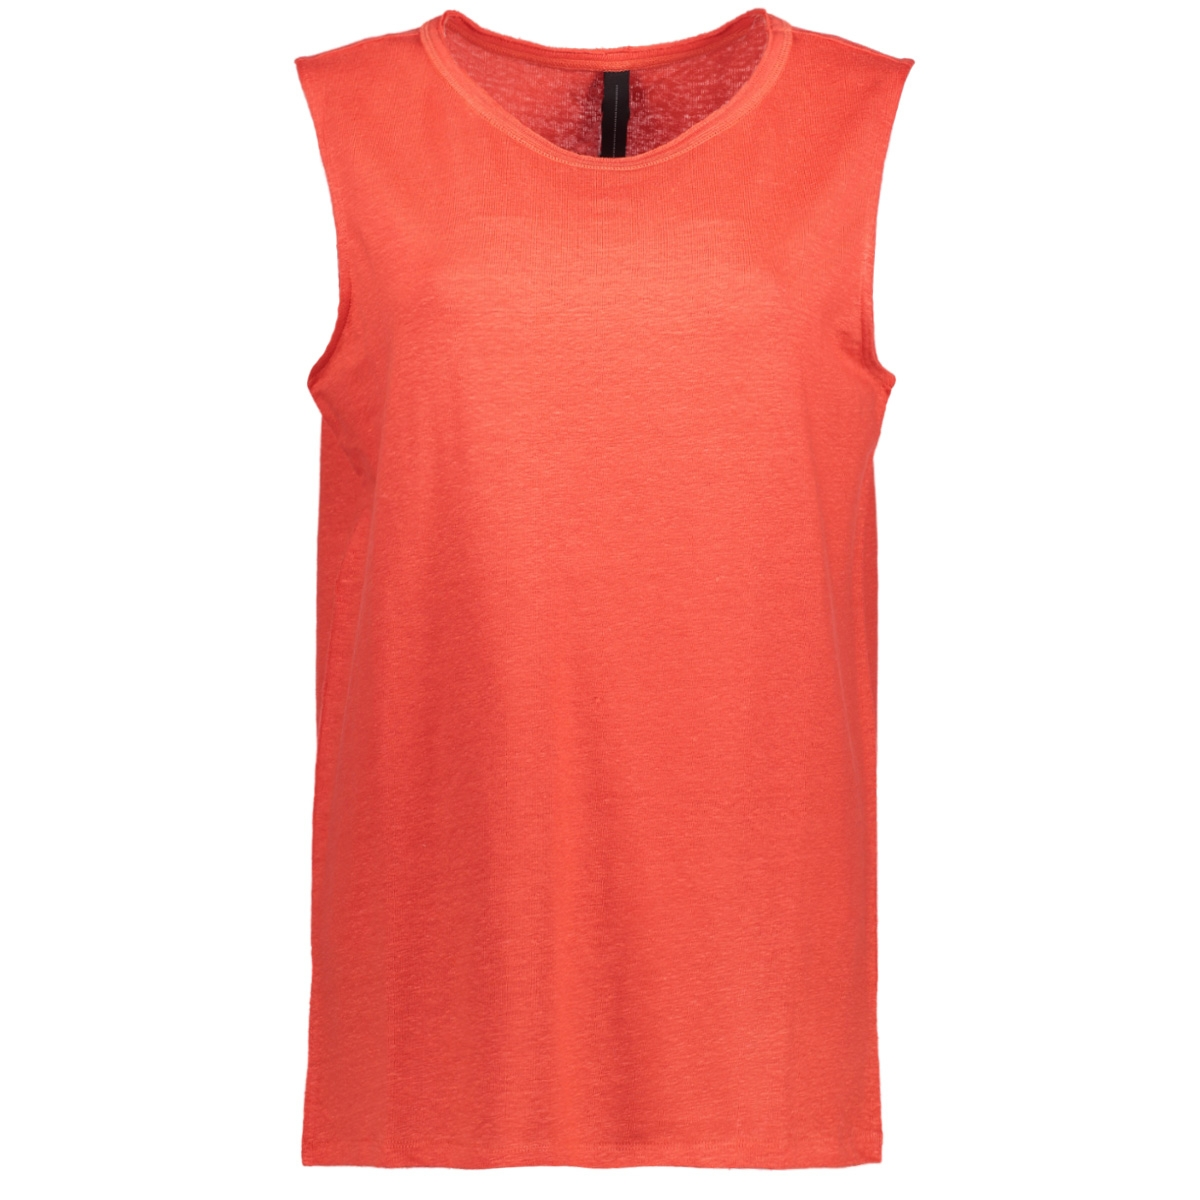 204588103 10 days top fluor red